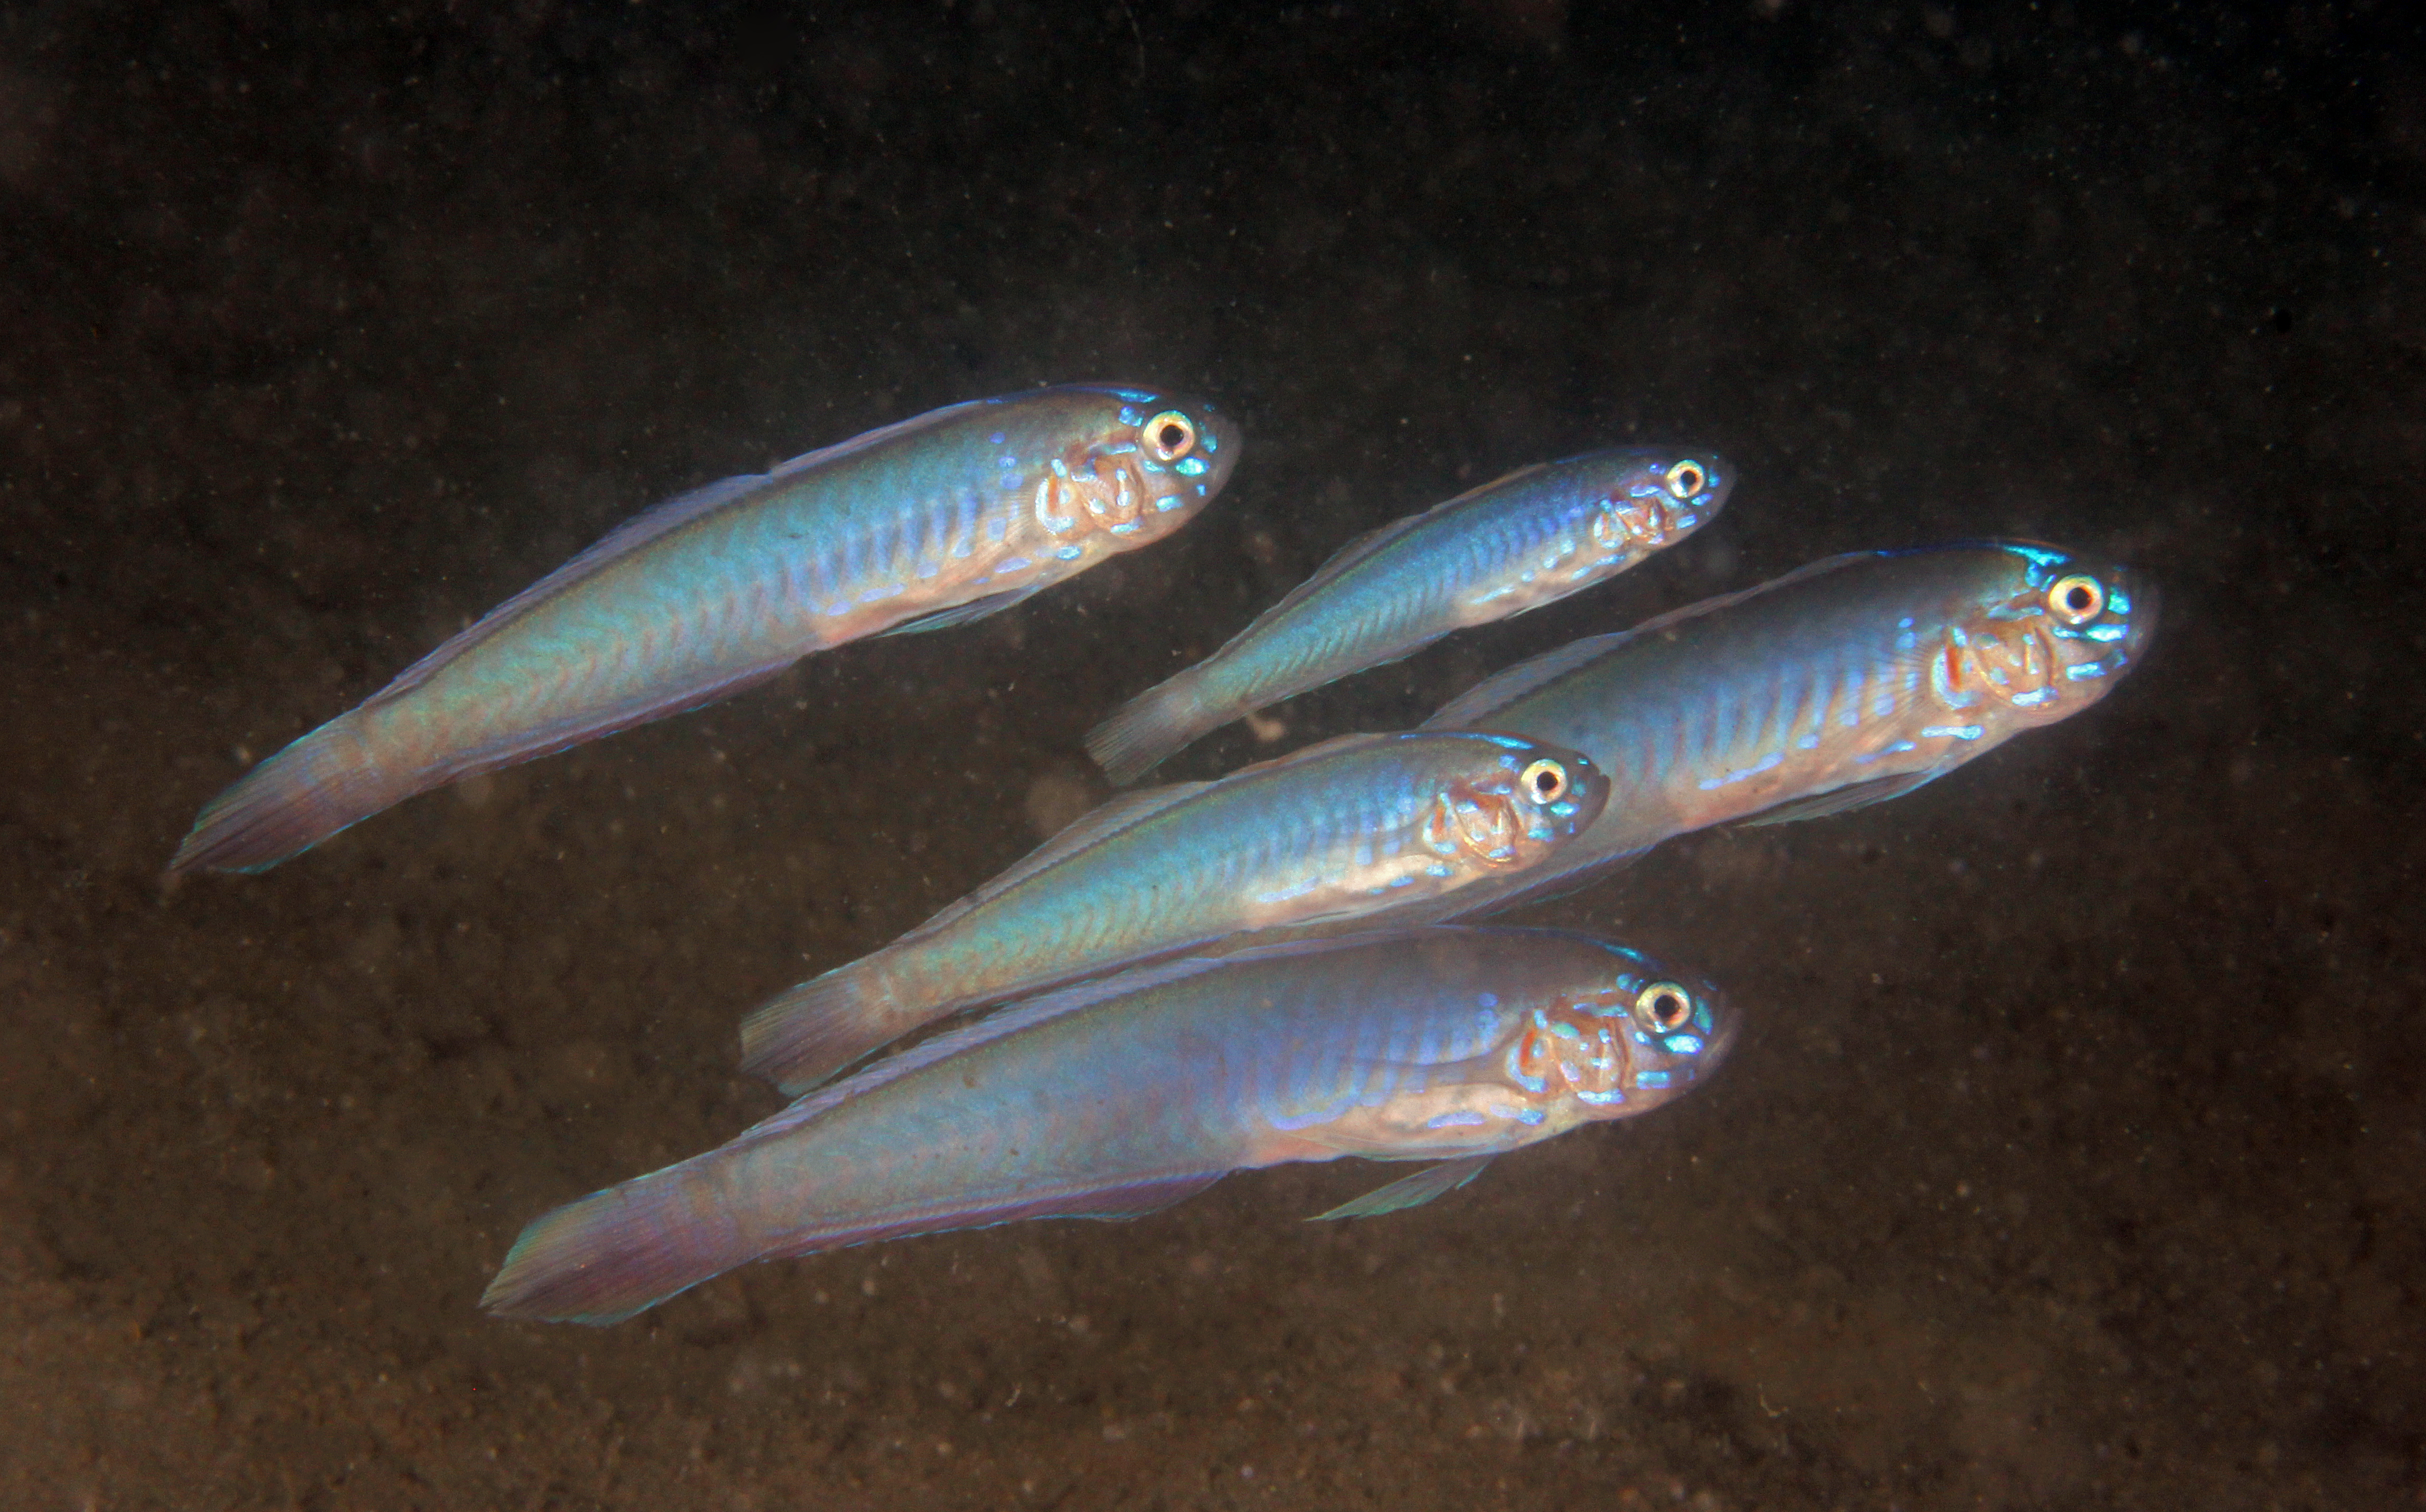 Blue-barred Ribbongoby